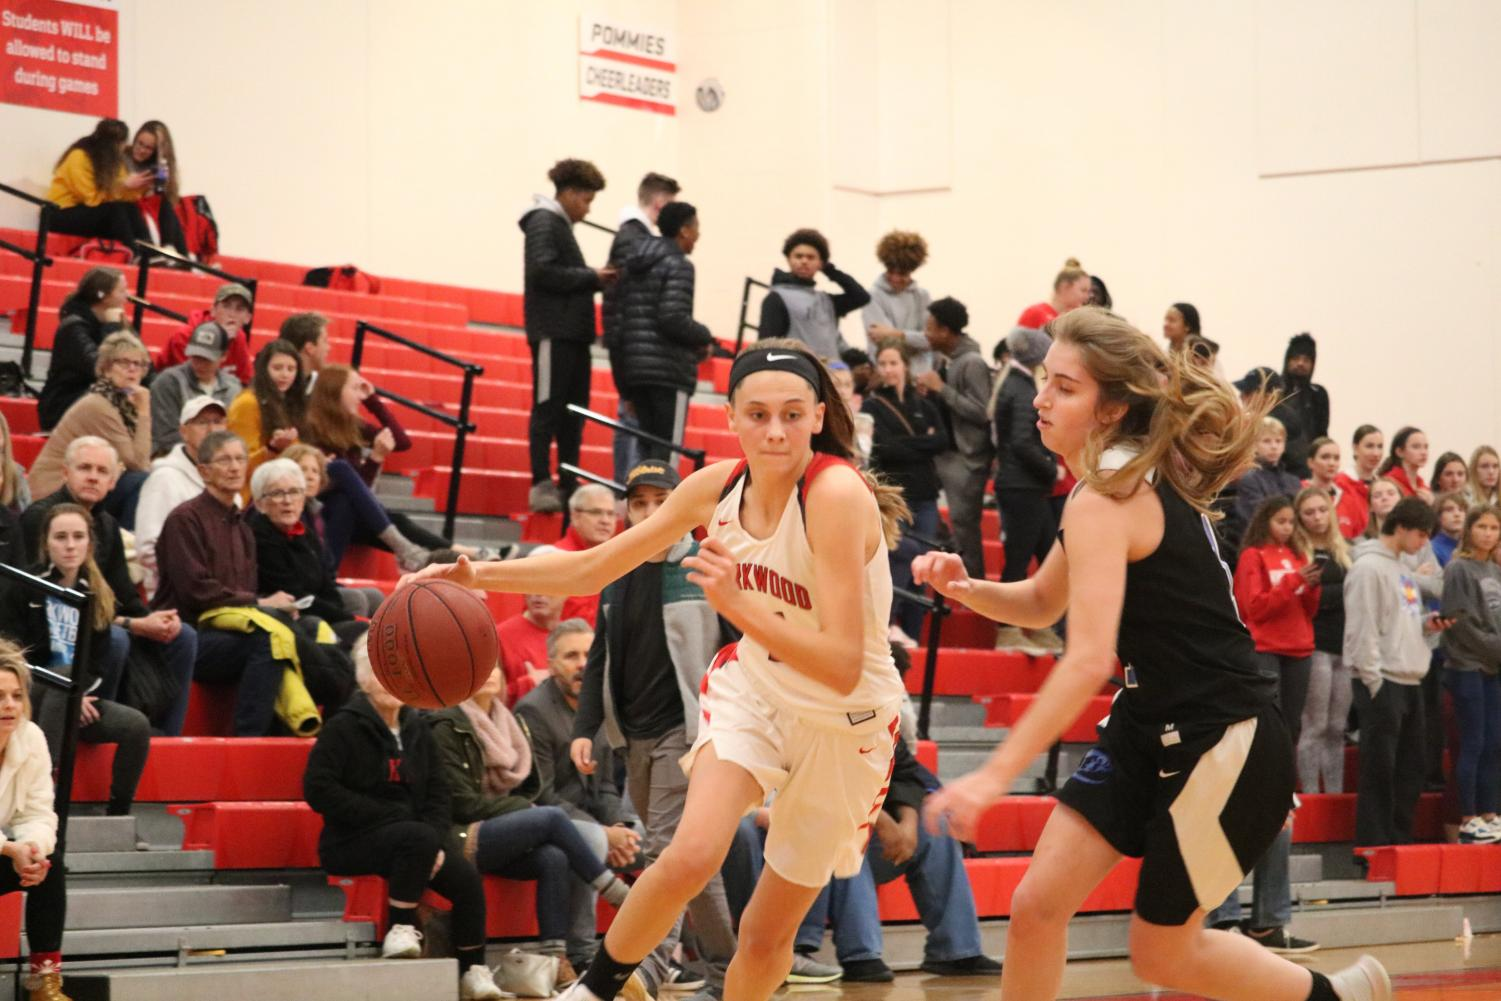 Rylee+Mulvaney%2C+junior%2C+dribbles+the+ball+down+the+court+against+her+Ladue+High+School+opponent+Dec.+15.+